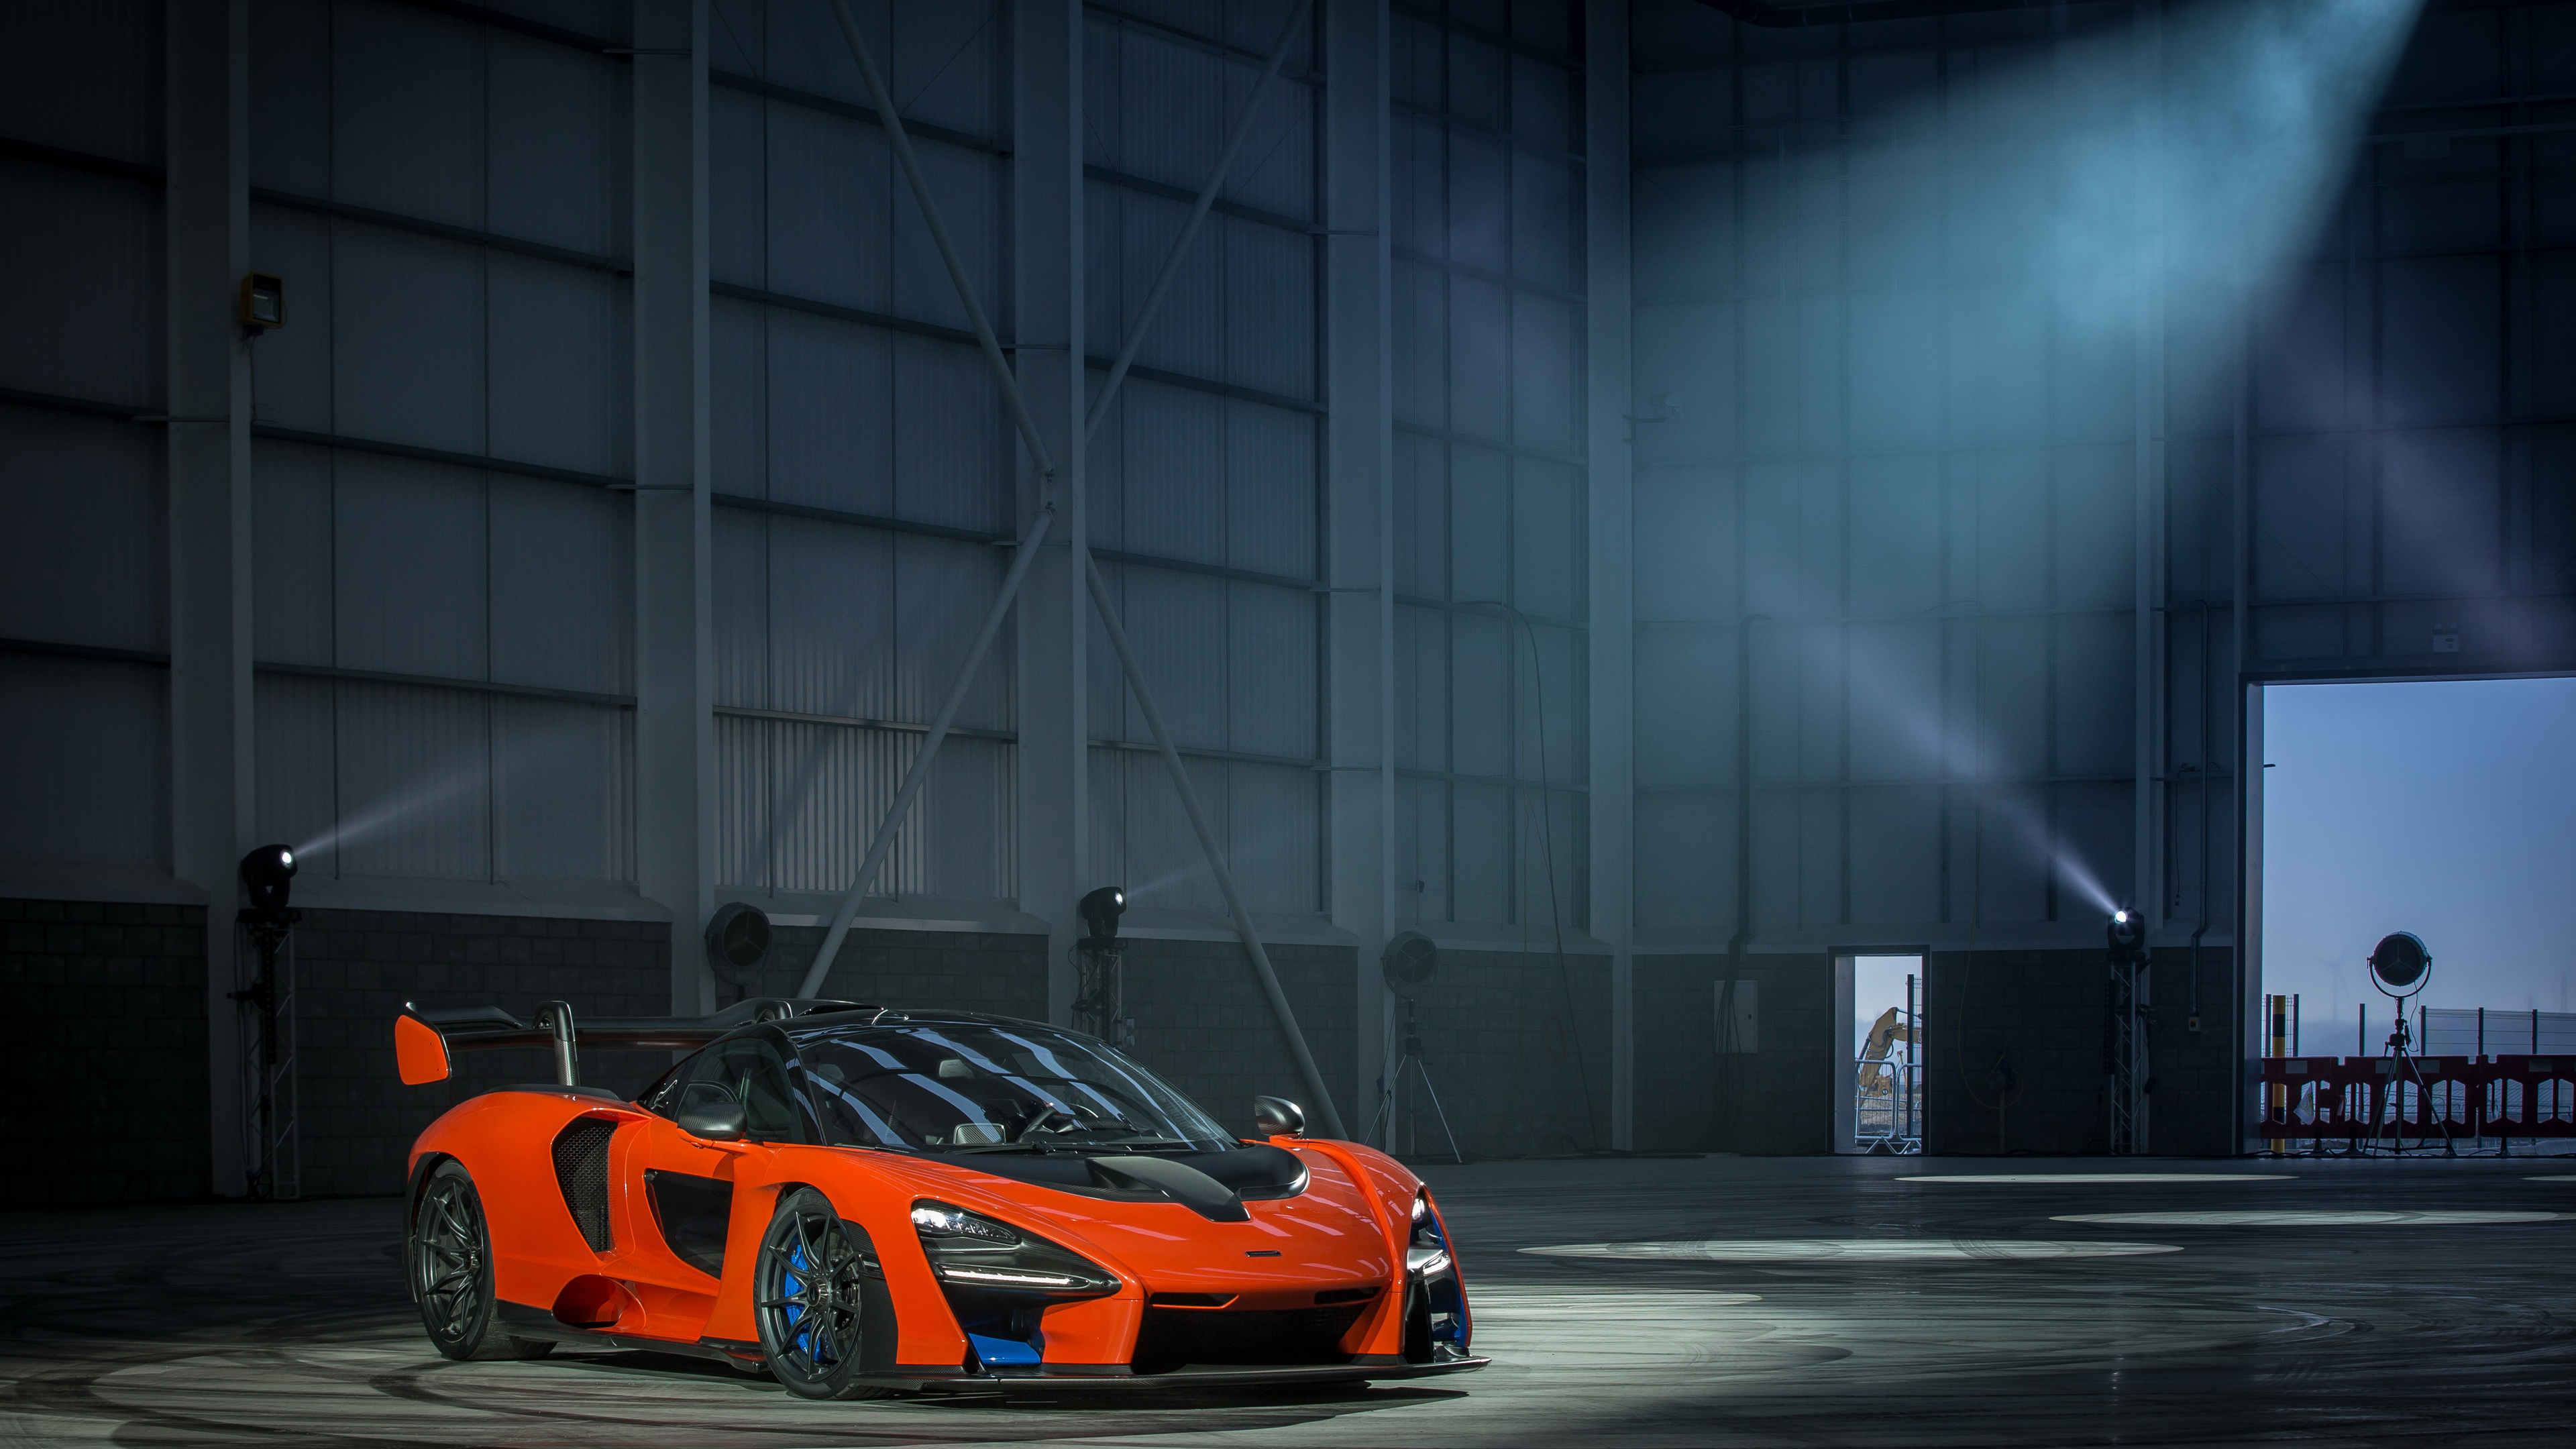 mclaren senna 2018 1539109244 - McLaren Senna 2018 - mclaren wallpapers, mclaren senna wallpapers, hd-wallpapers, cars wallpapers, 4k-wallpapers, 2018 cars wallpapers